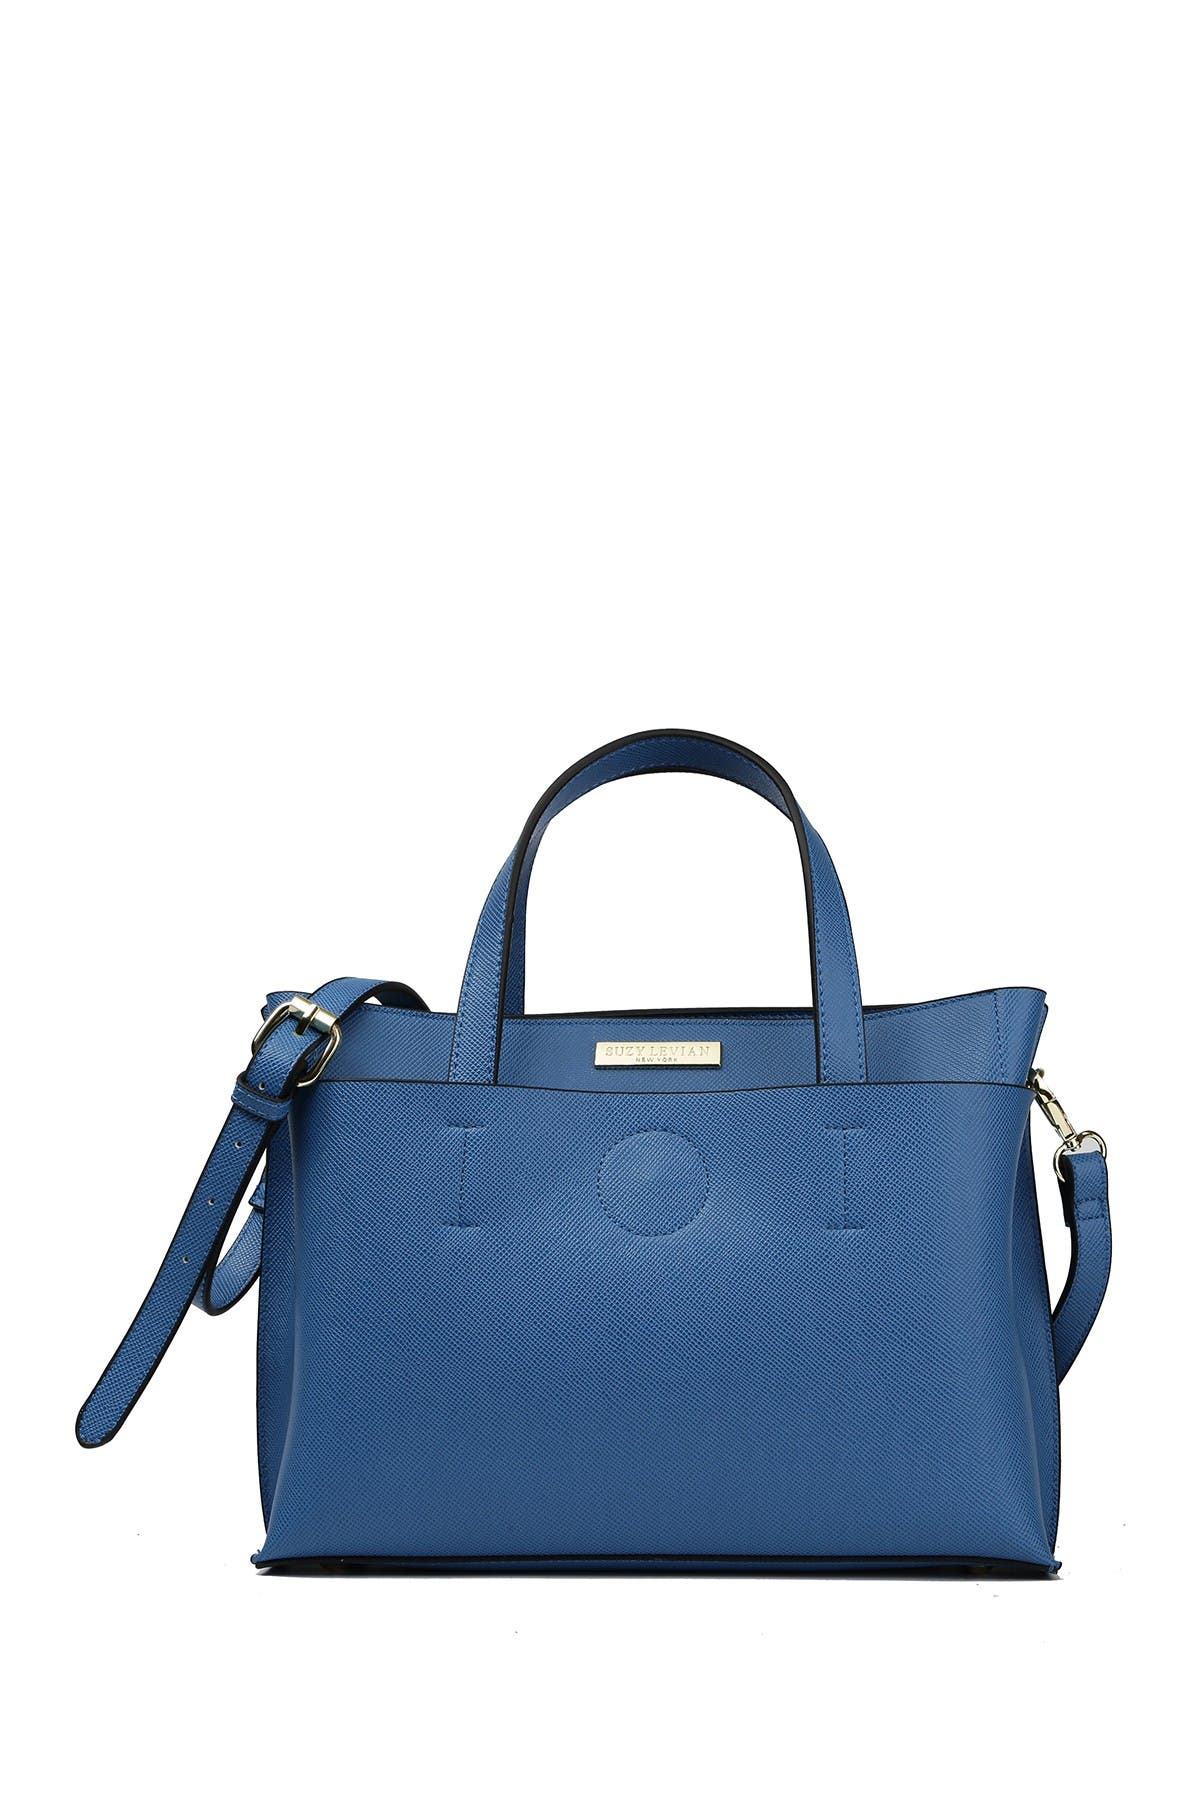 Image of Suzy Levian Saffiano Faux Leather Satchel